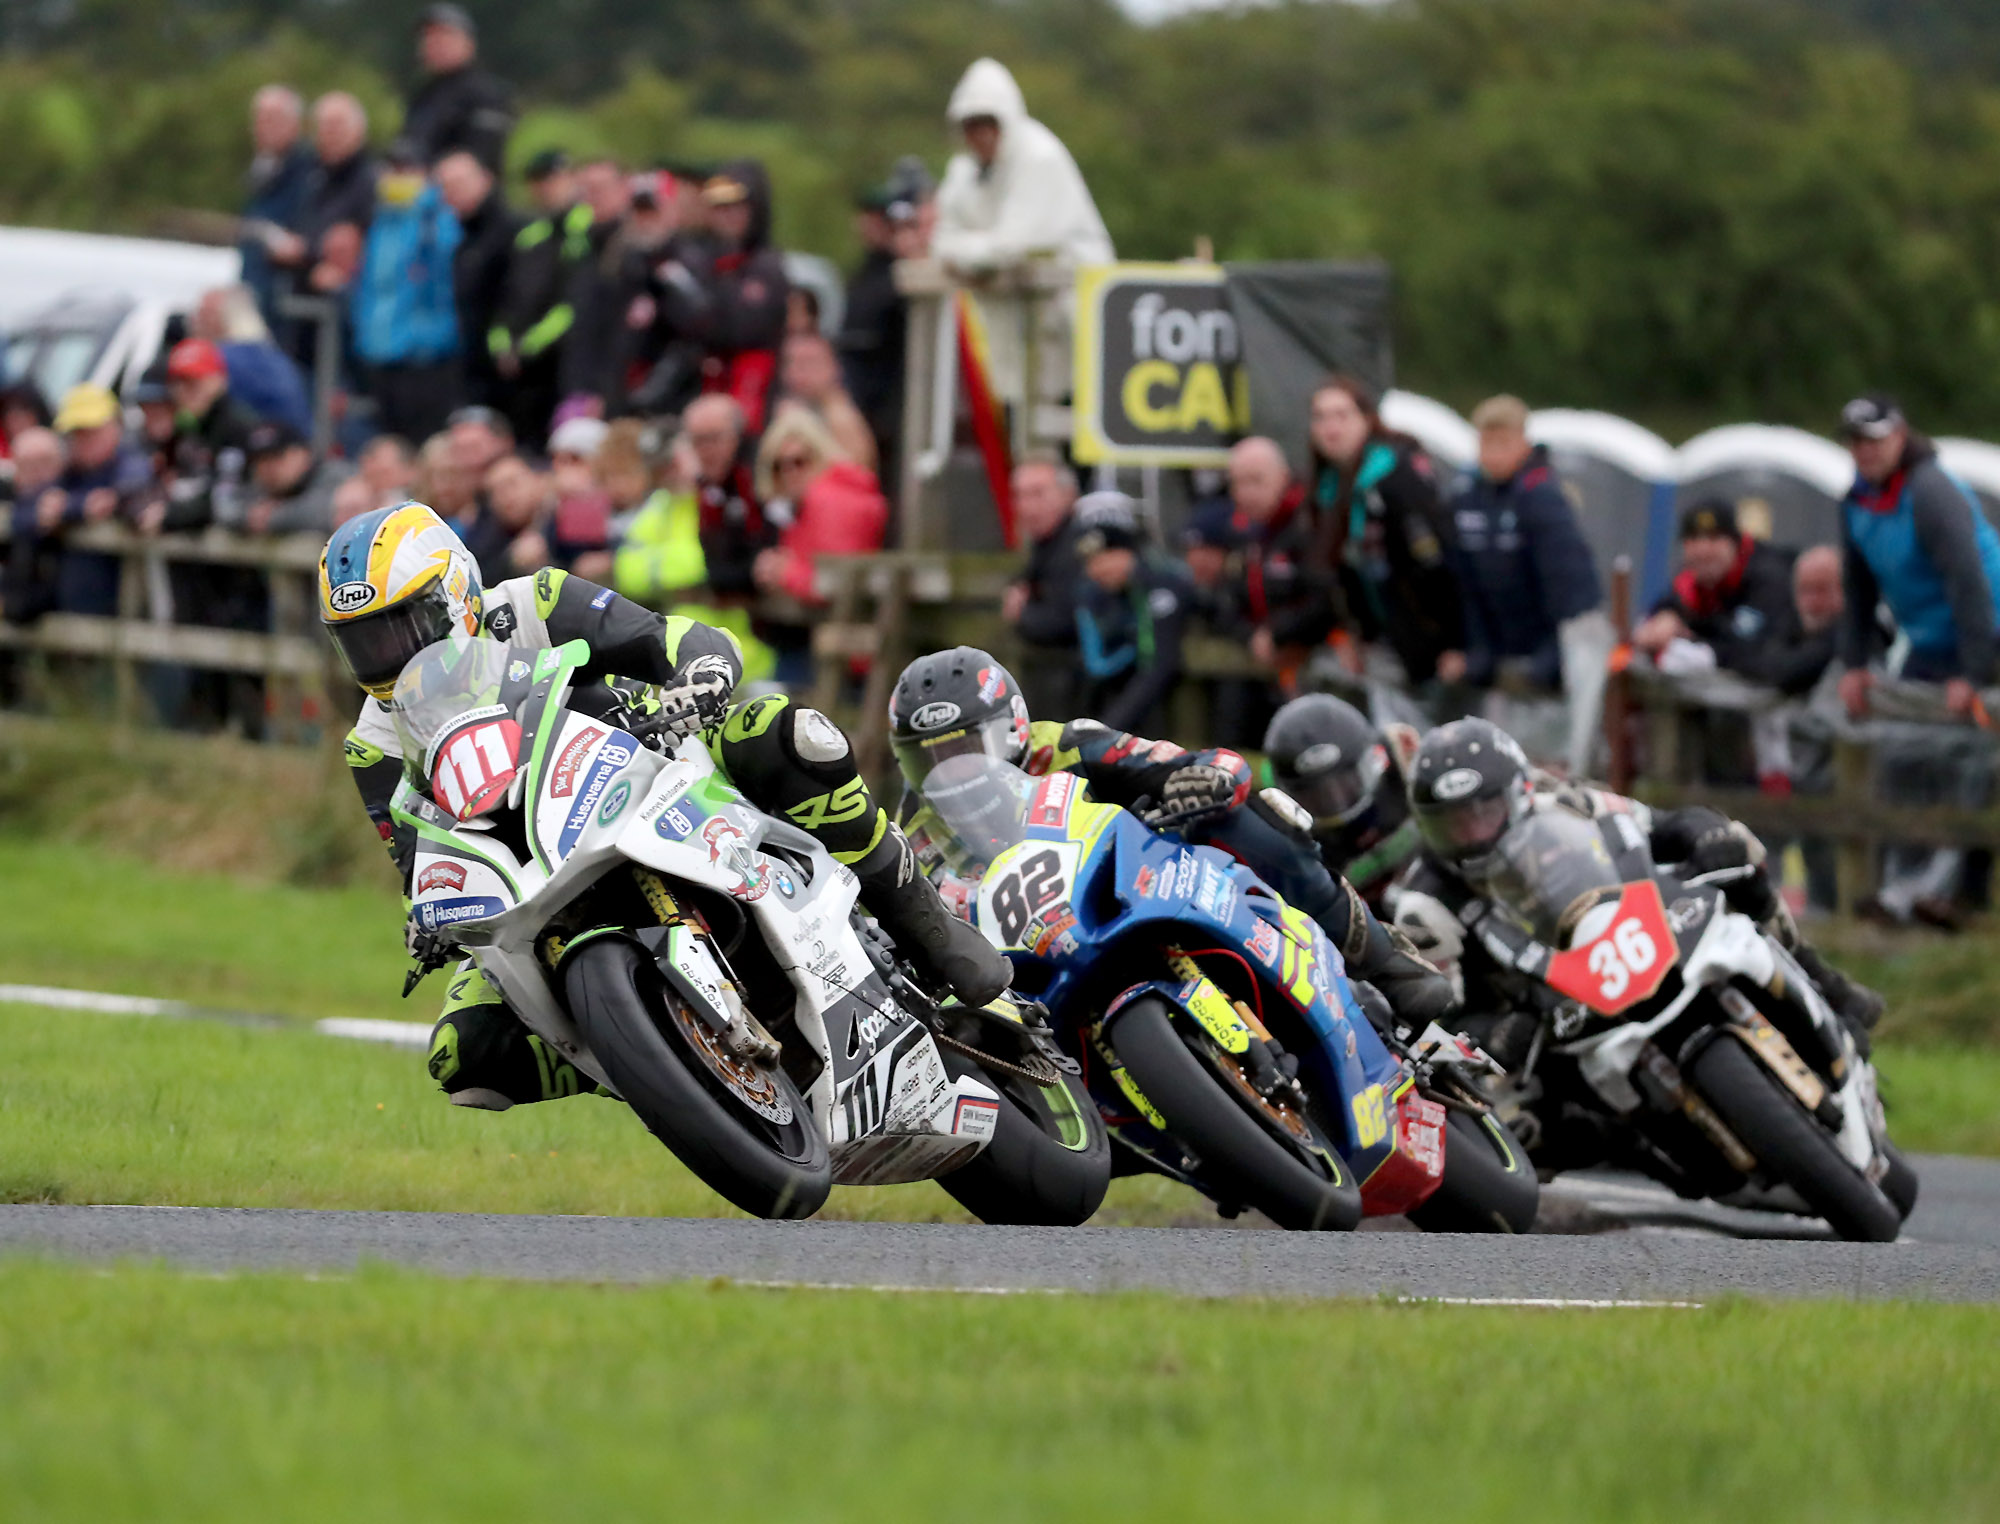 Riders at the Ulster Grand Prix